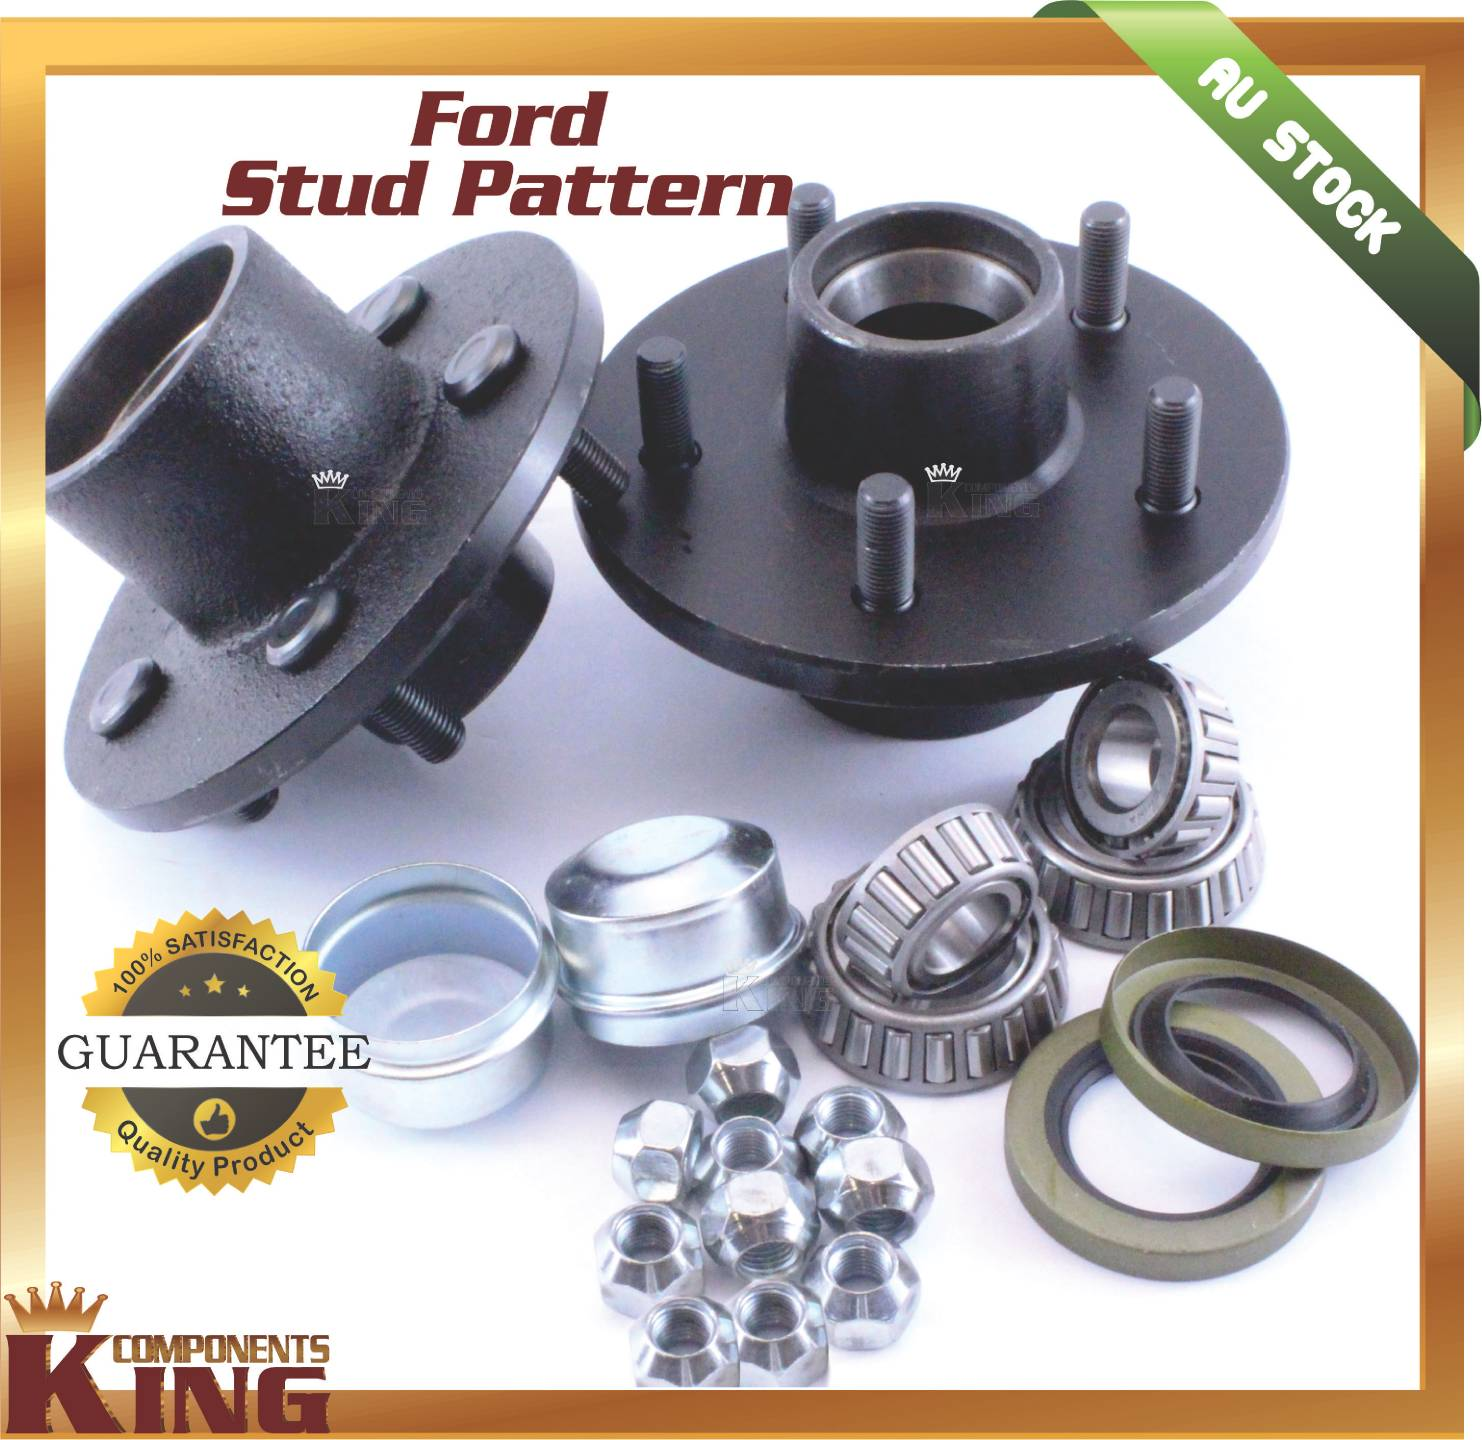 5-STUD-FORD-FIVE-STUD-TRAILER-HUBS-PAIR-WITH-HOLDEN-BEARINGS-TRAILER-PARTS